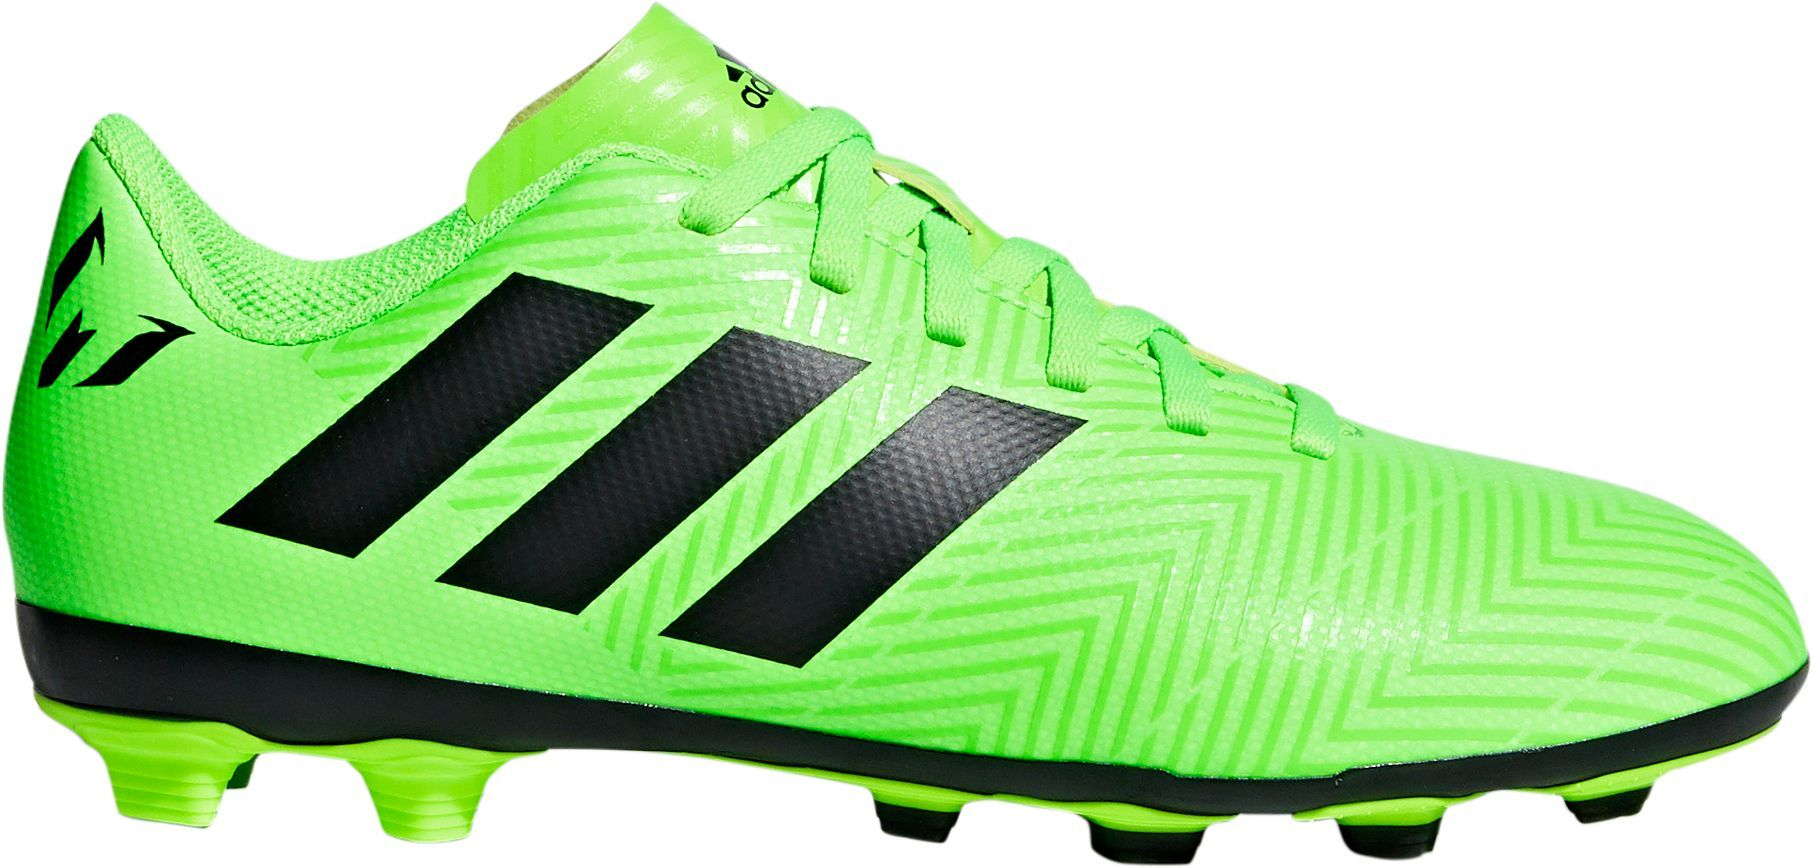 650f1199 adidas Kids' Nemeziz Messi 18.4 FXG Soccer Cleats | Products ...